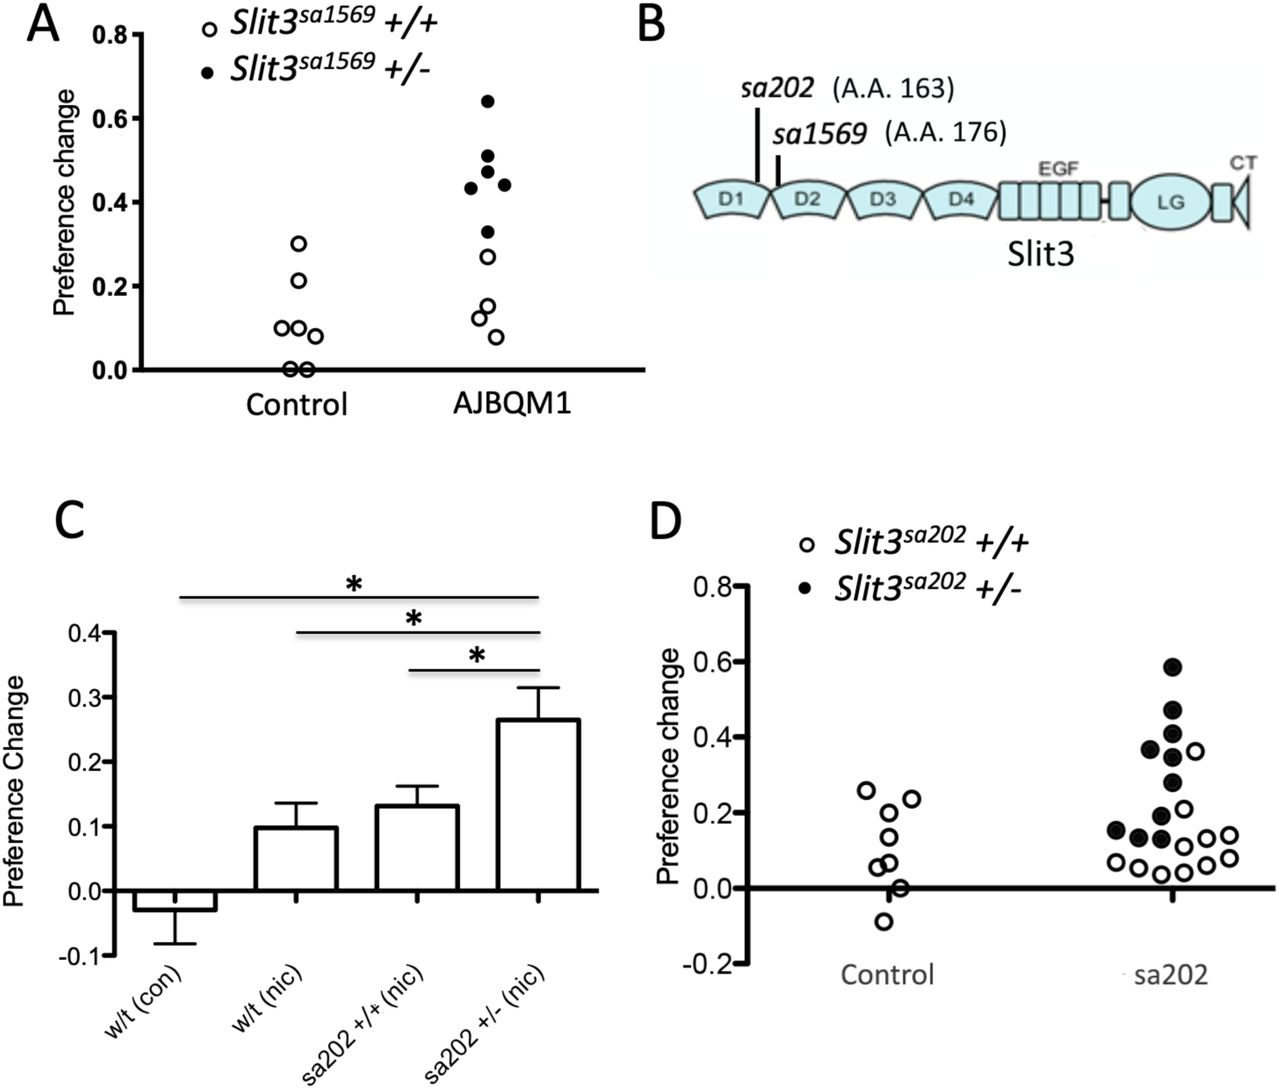 Identification of Slit3 as a locus affecting nicotine